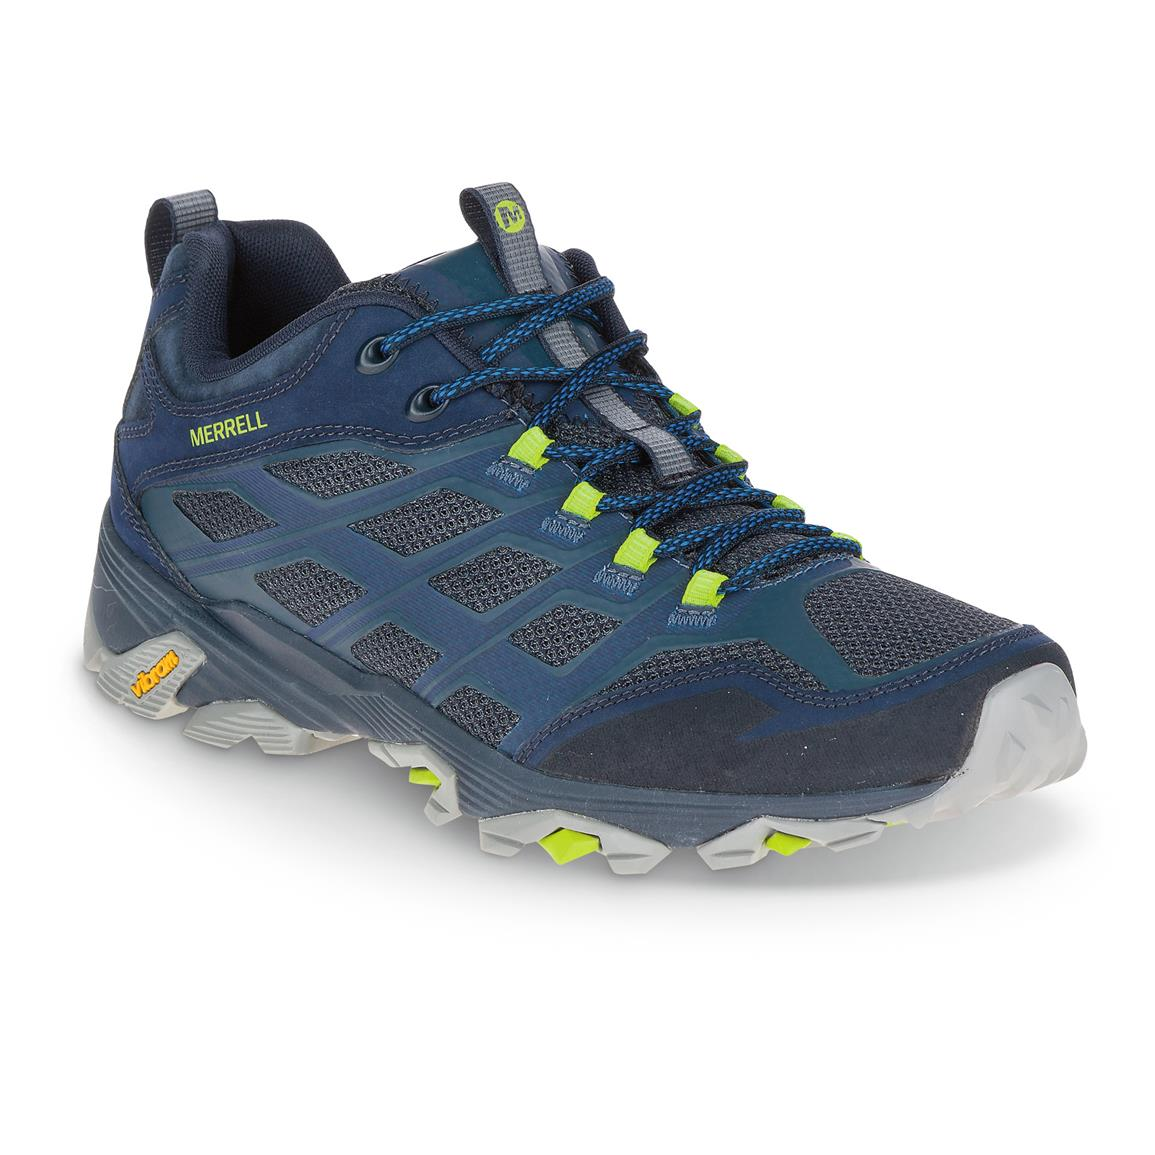 Merrell Men's Moab FST Hiking Shoes, Navy